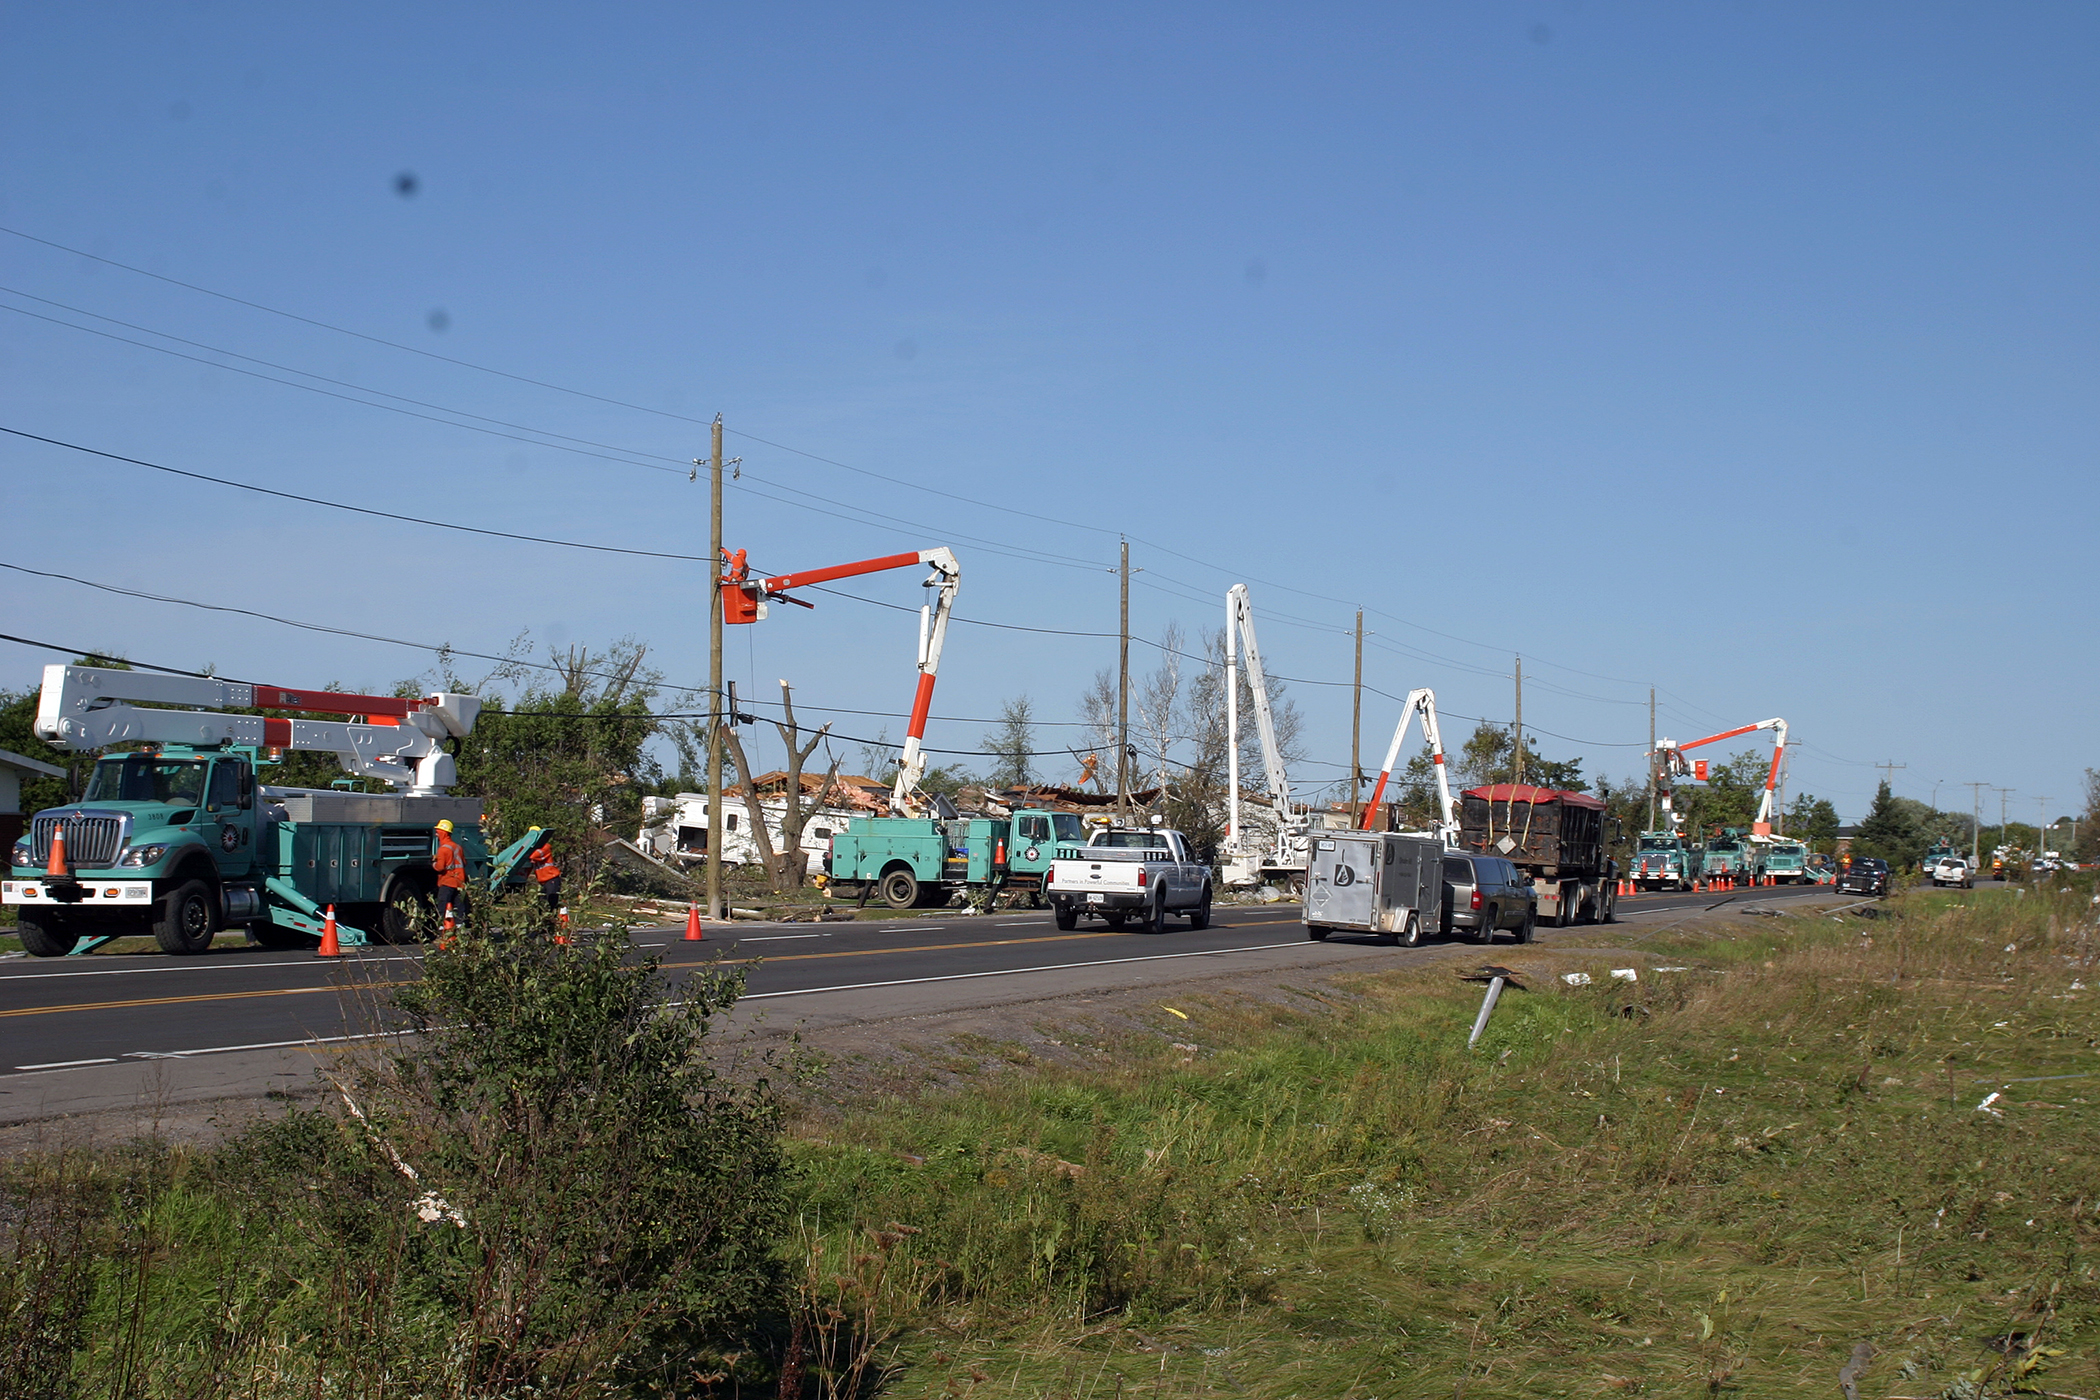 Hydro crews line the Dunrobin Side Road working hard to restore power to the neighbourhood. Photo by Jake Davies